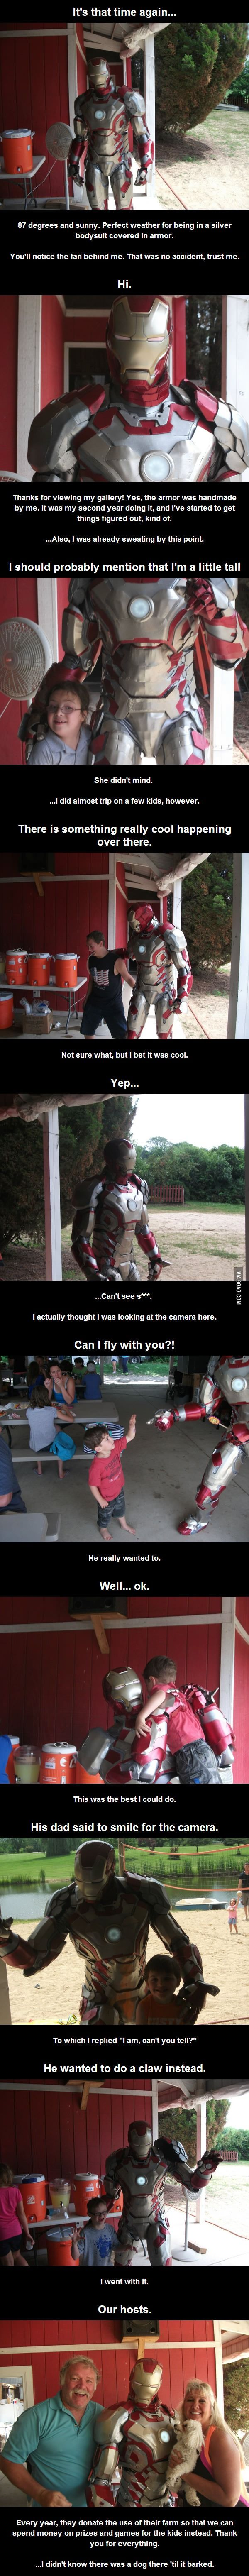 Cosplay for Charity: Good guy Iron Man at an event for disabled children and those with Downs Syndrome.